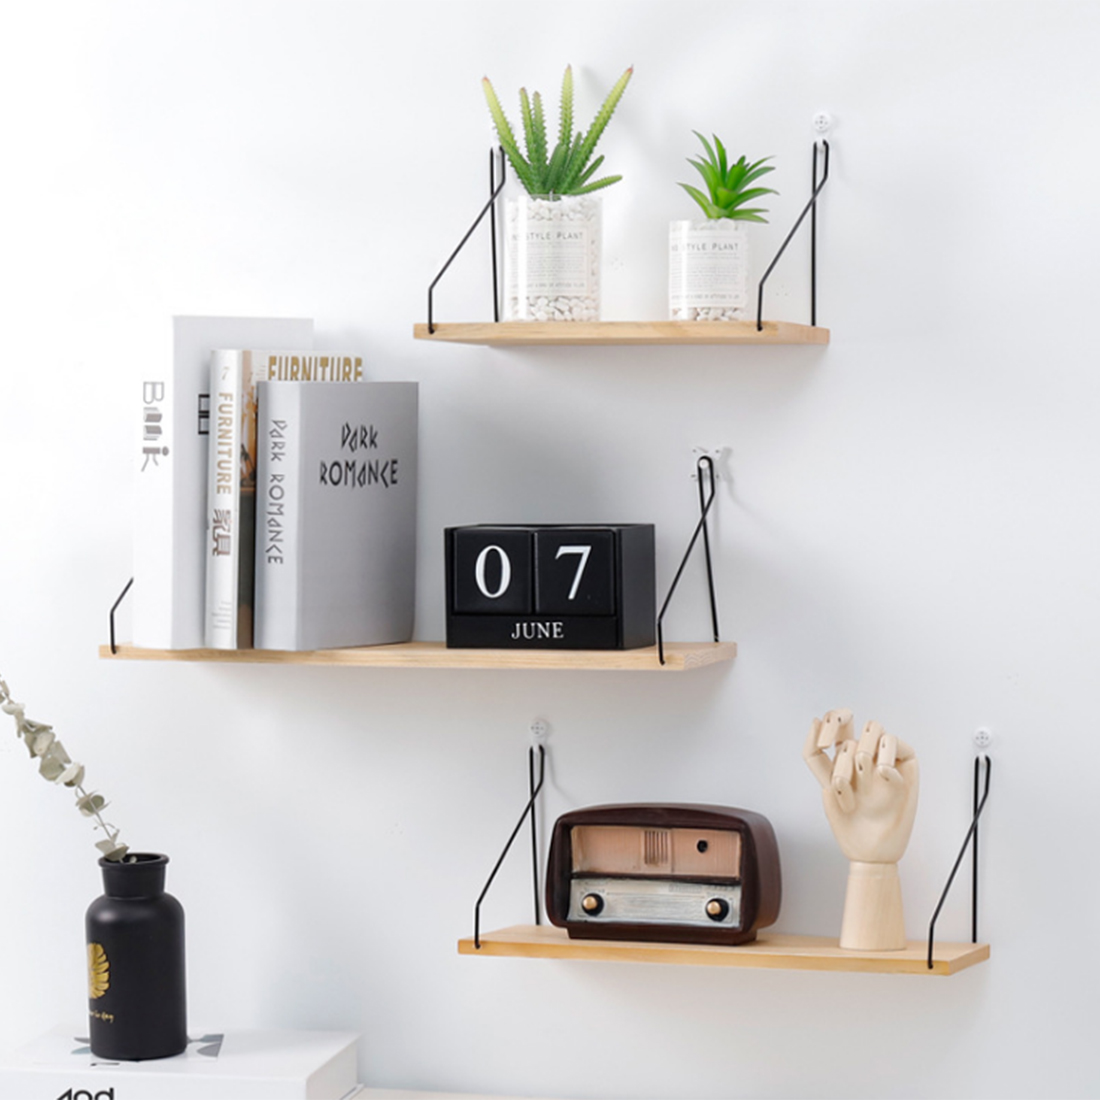 HIPSTEEN Wooden Iron Wall Shelf Wall Mounted Storage Rack Organization For  Bedroom Kitchen Home Decor DIY Wall Decoration Holder